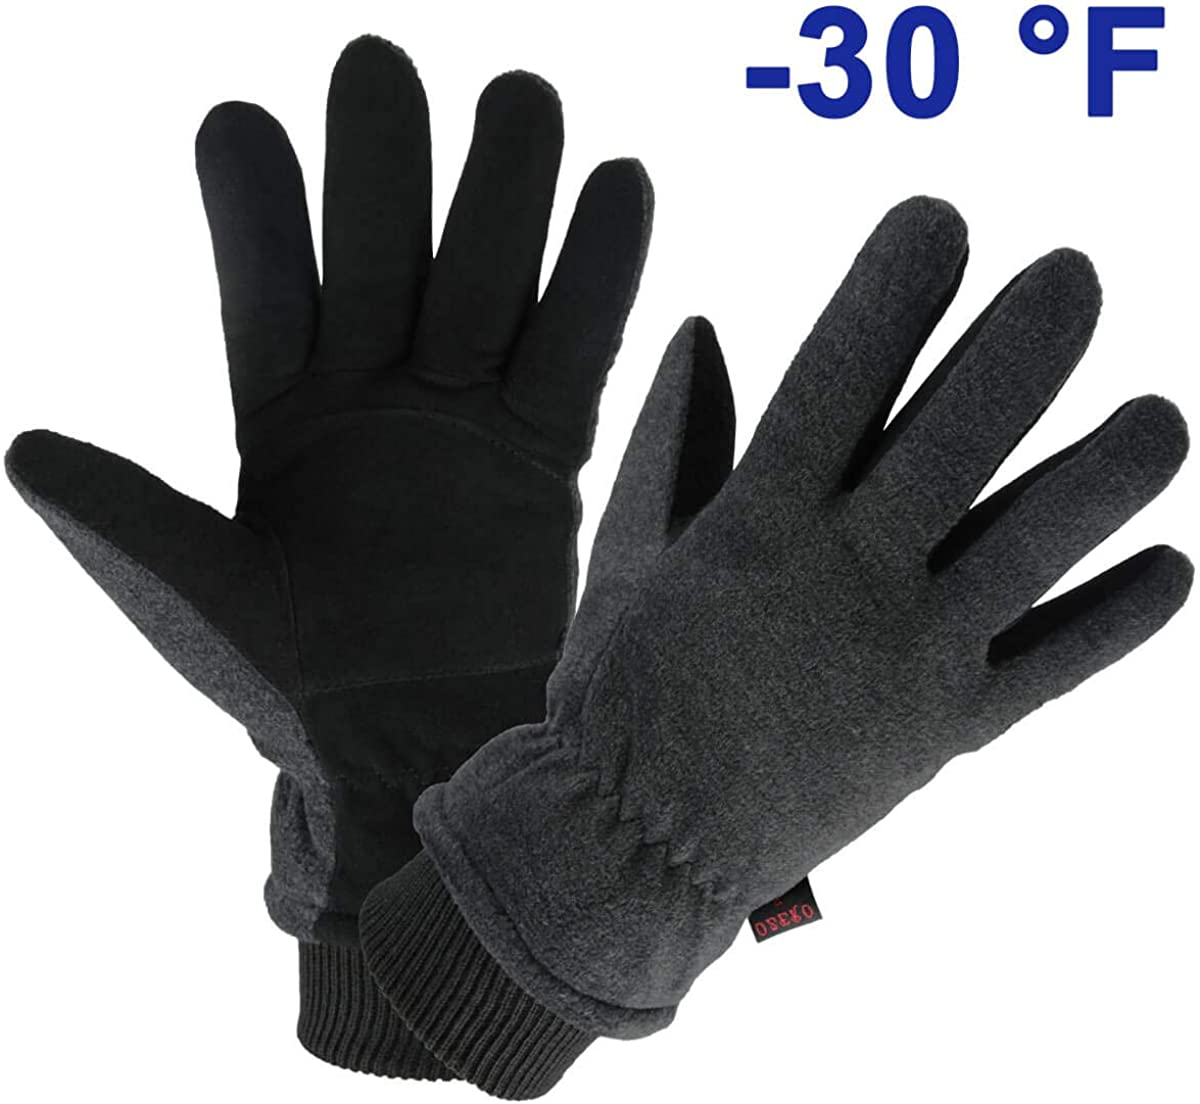 OZERO Winter Gloves Water Resistant Thermal Glove with Deerskin Suede Leather and Insulated Polar Fleece for Driving/Cycling/Running/Hiking/Snow Ski in Cold Weather - Warm Gifts for Men and Women : Clothing